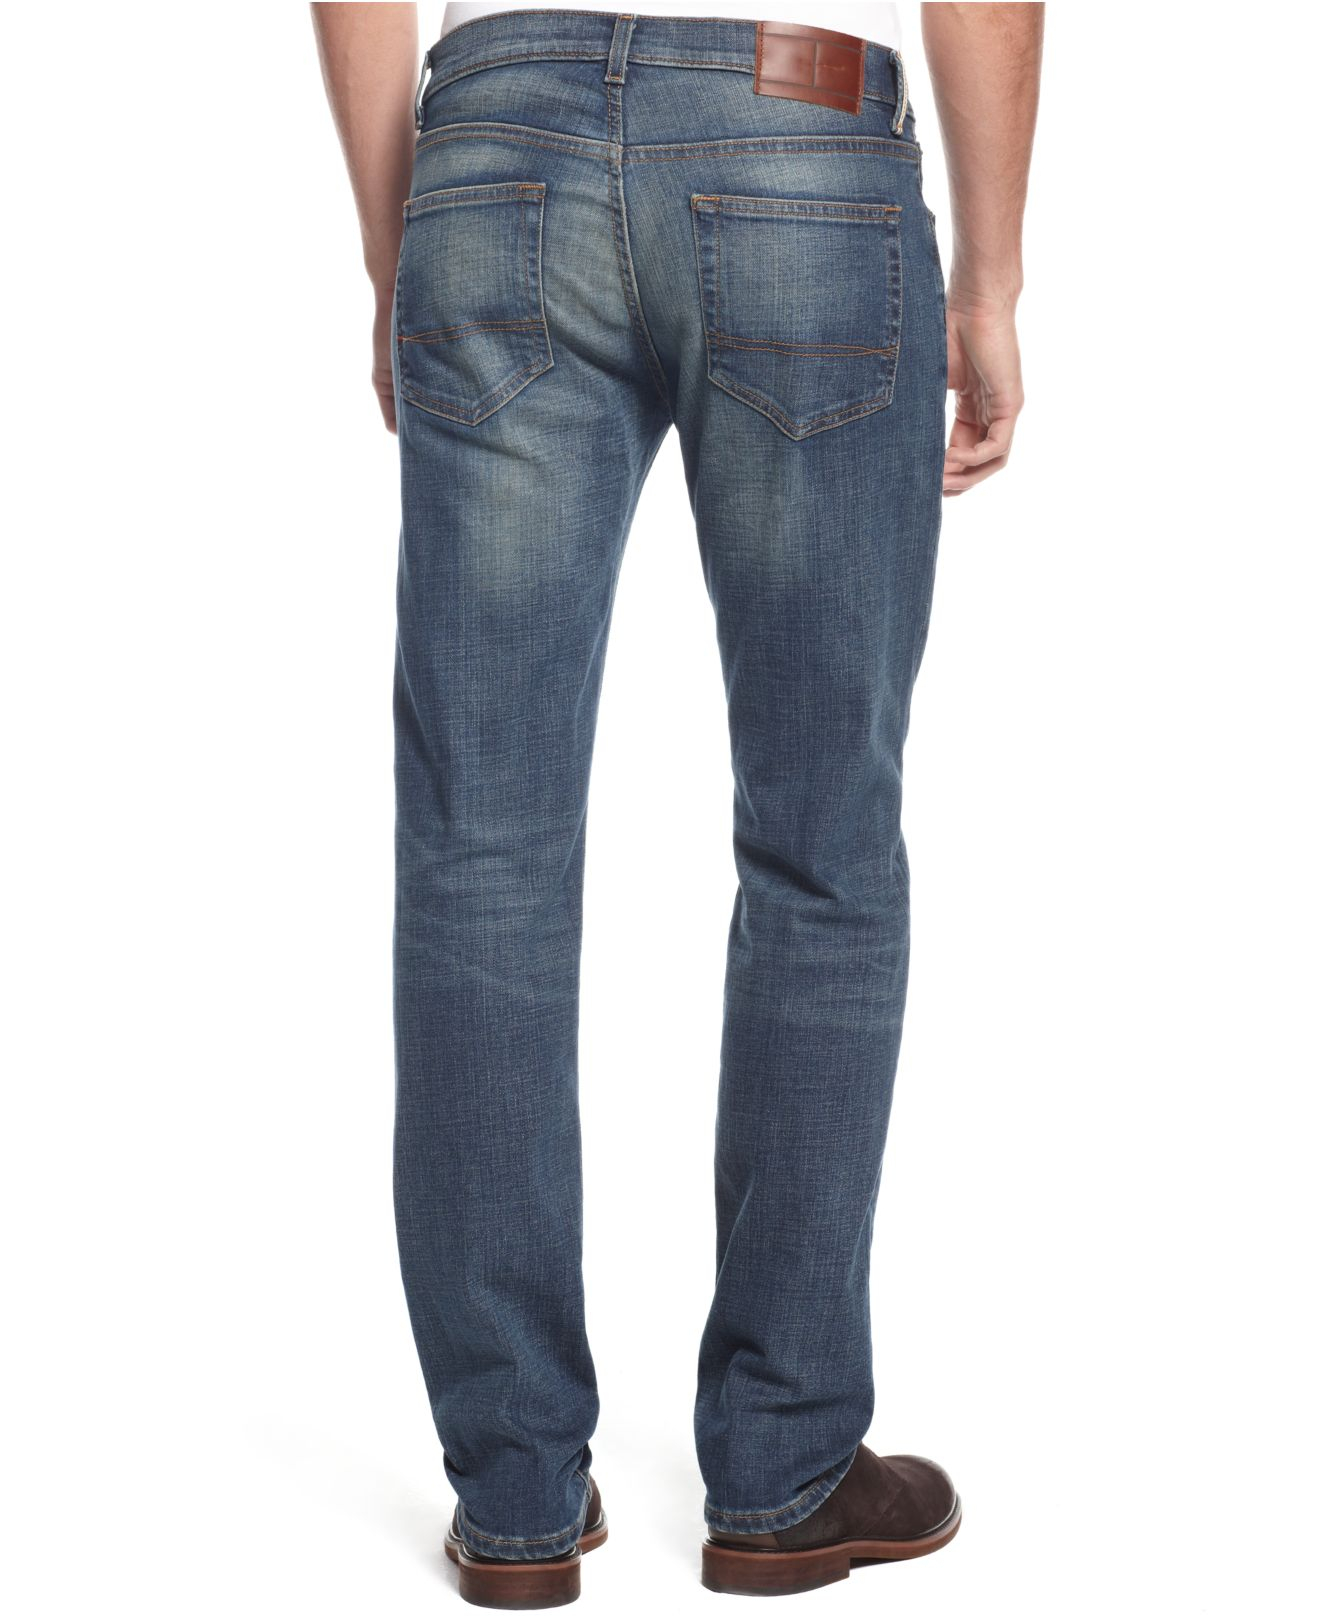 tommy hilfiger big and tall bayside jeans in blue for men lyst. Black Bedroom Furniture Sets. Home Design Ideas